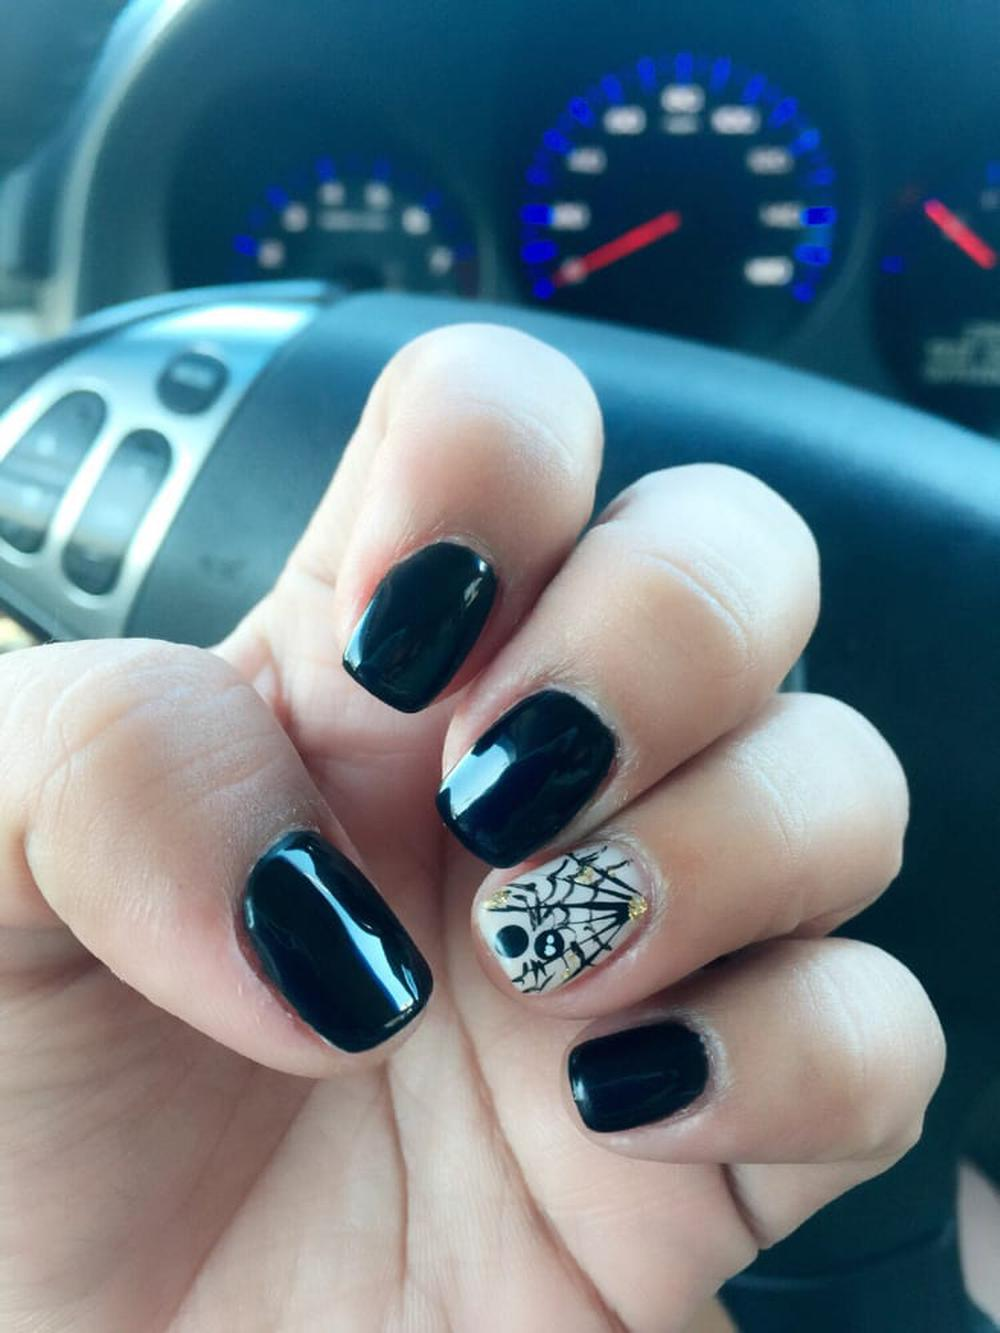 Nails by Kim